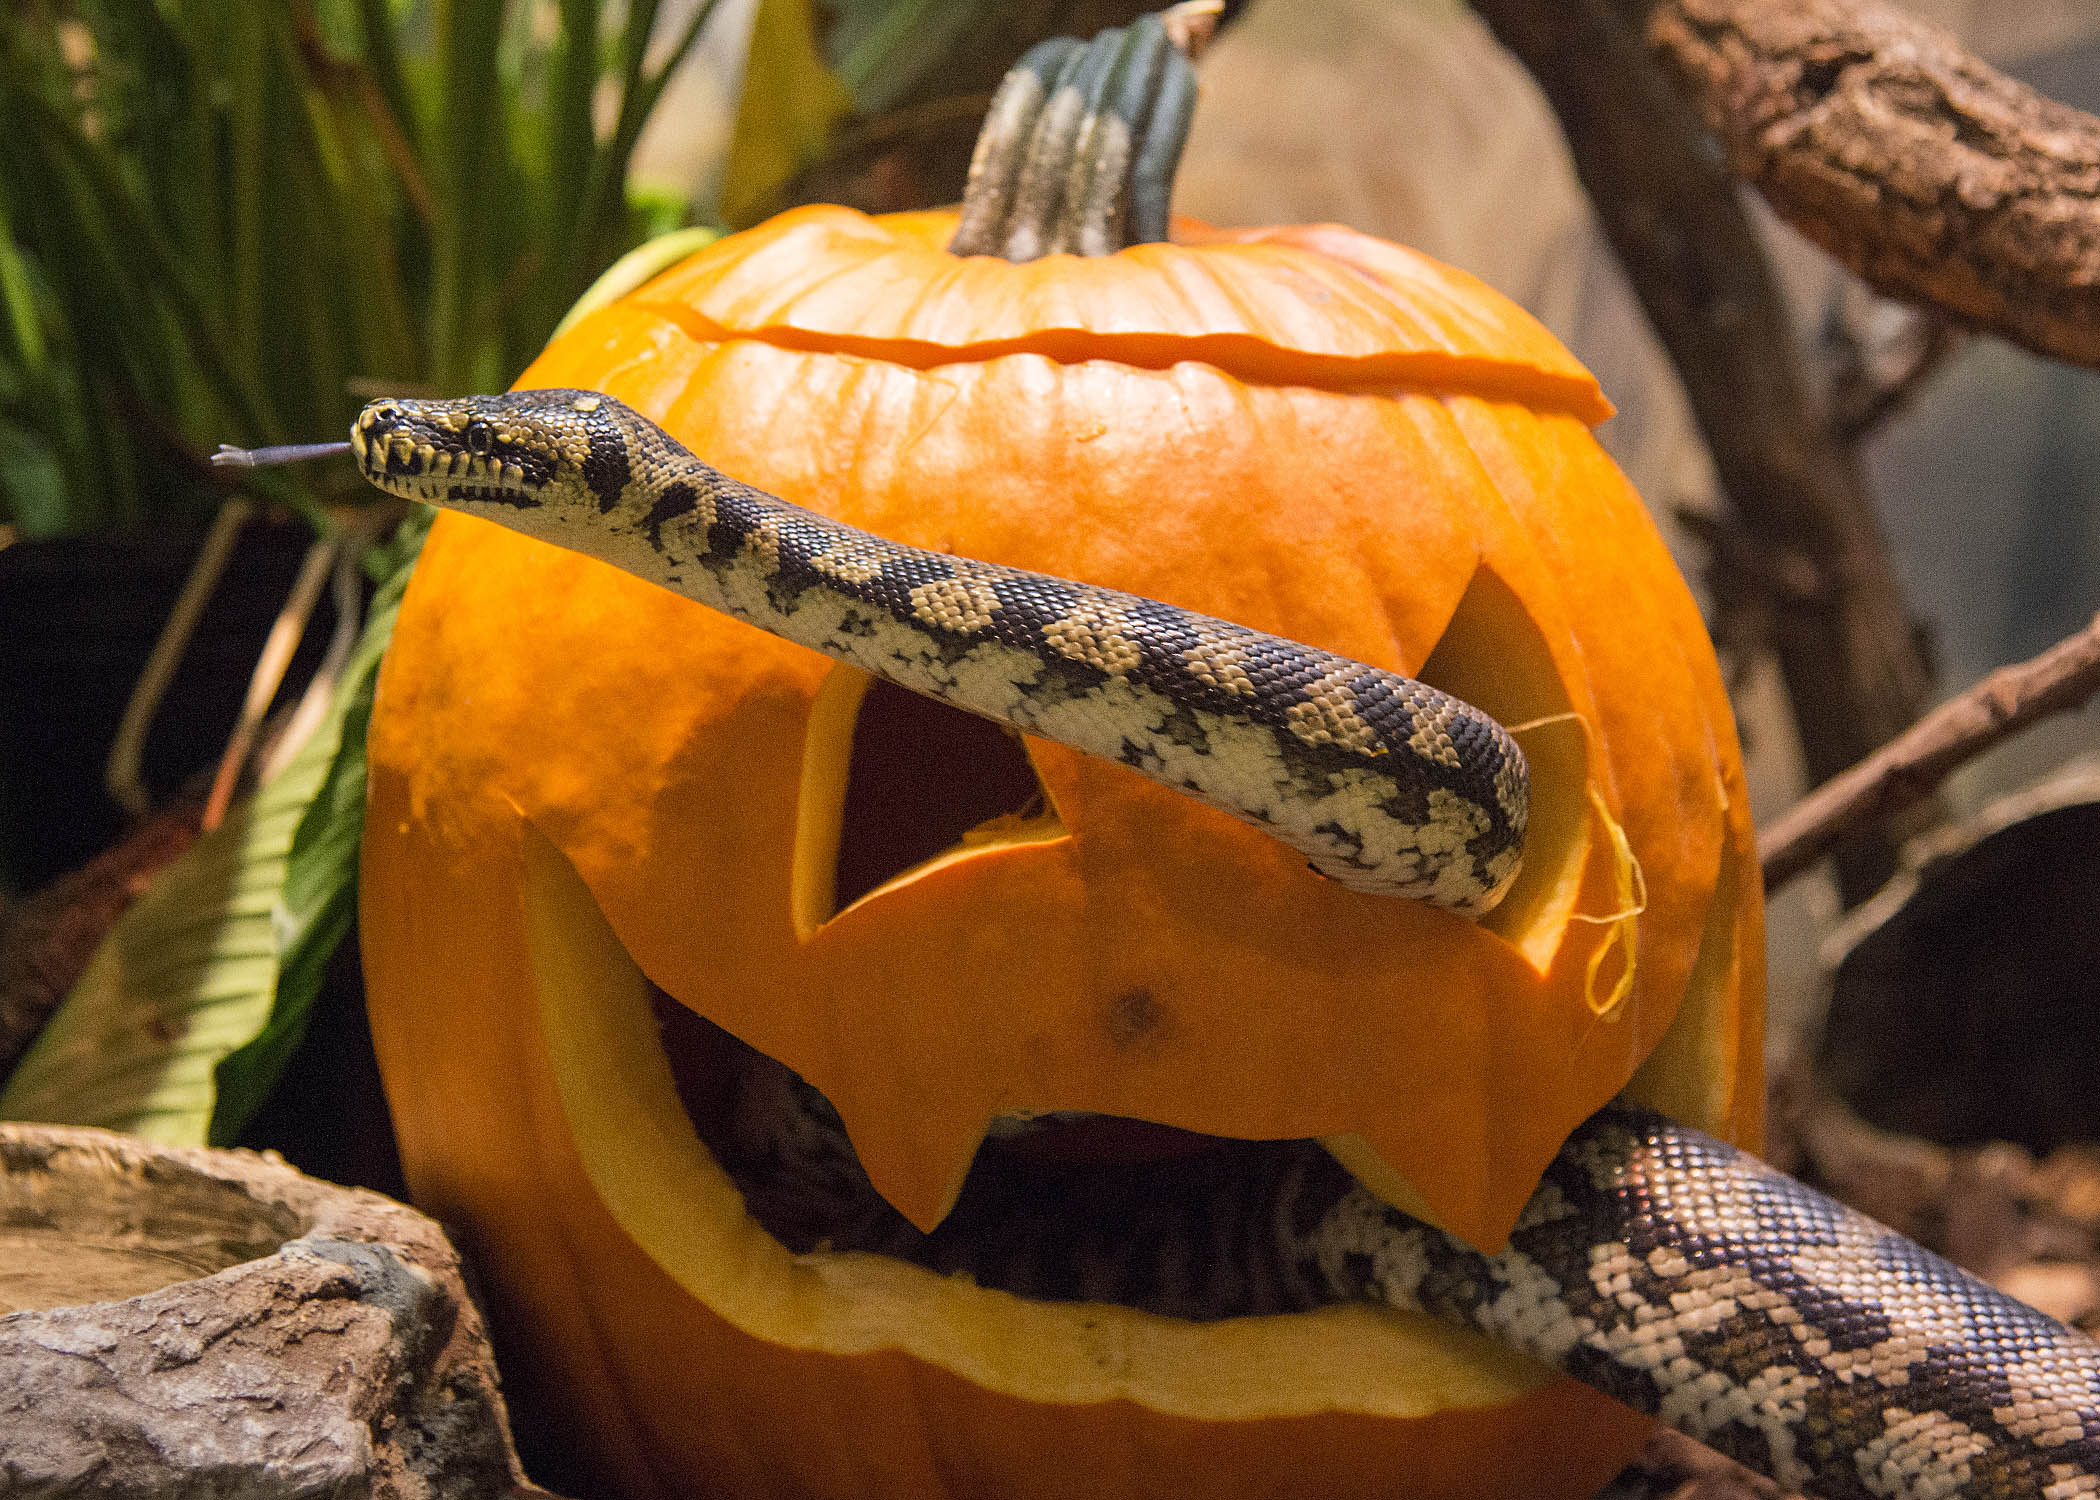 "<div class=""meta image-caption""><div class=""origin-logo origin-image wls""><span>WLS</span></div><span class=""caption-text"">A carpet python slithers his way through a carved pumpkin at Brookfield Zoo. (Kelly Tone/Chicago Zoological Society)</span></div>"